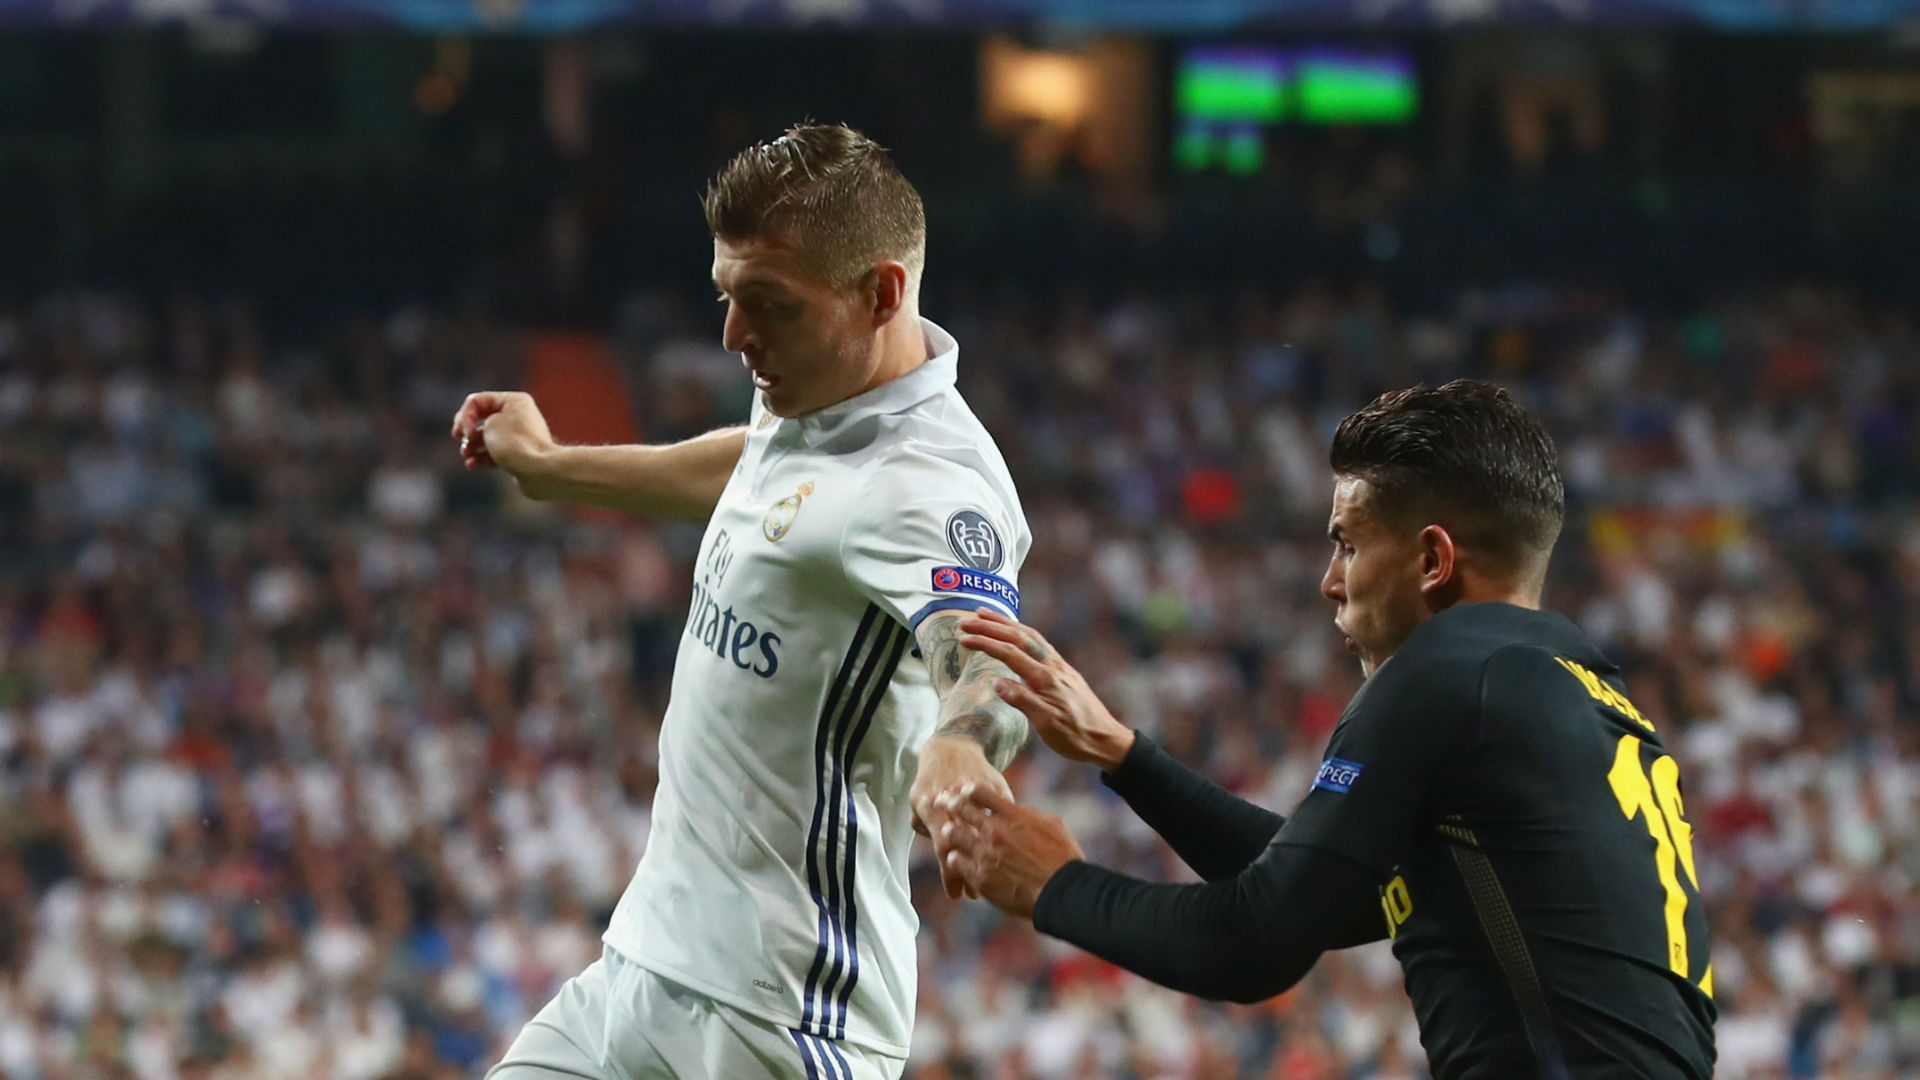 Toni Kroos says he was right to leave Bayern for Real